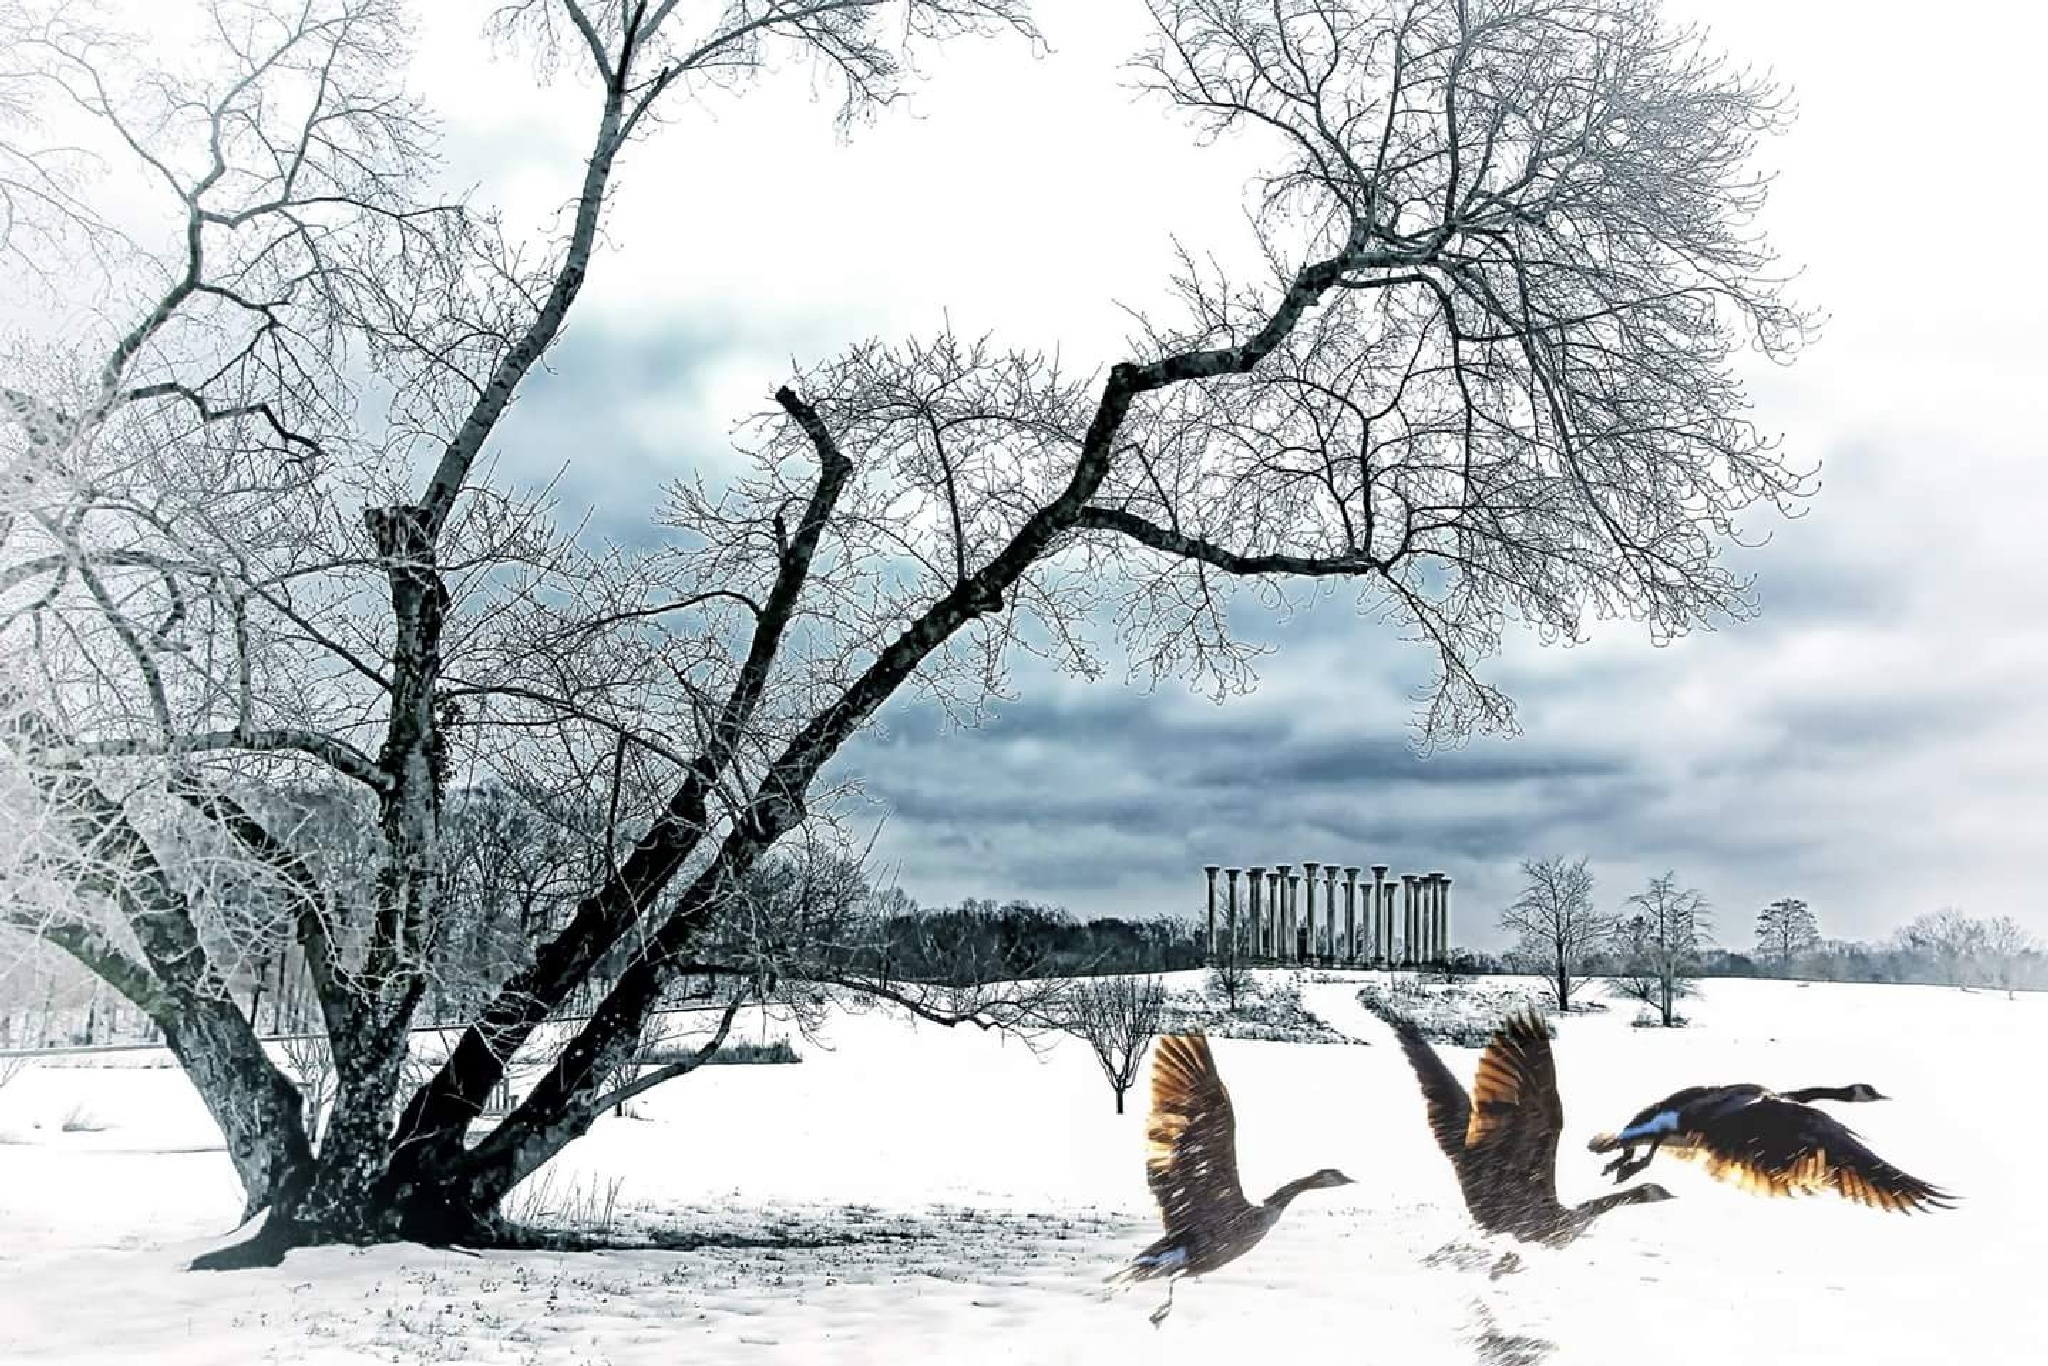 DC Winter by bkhuong